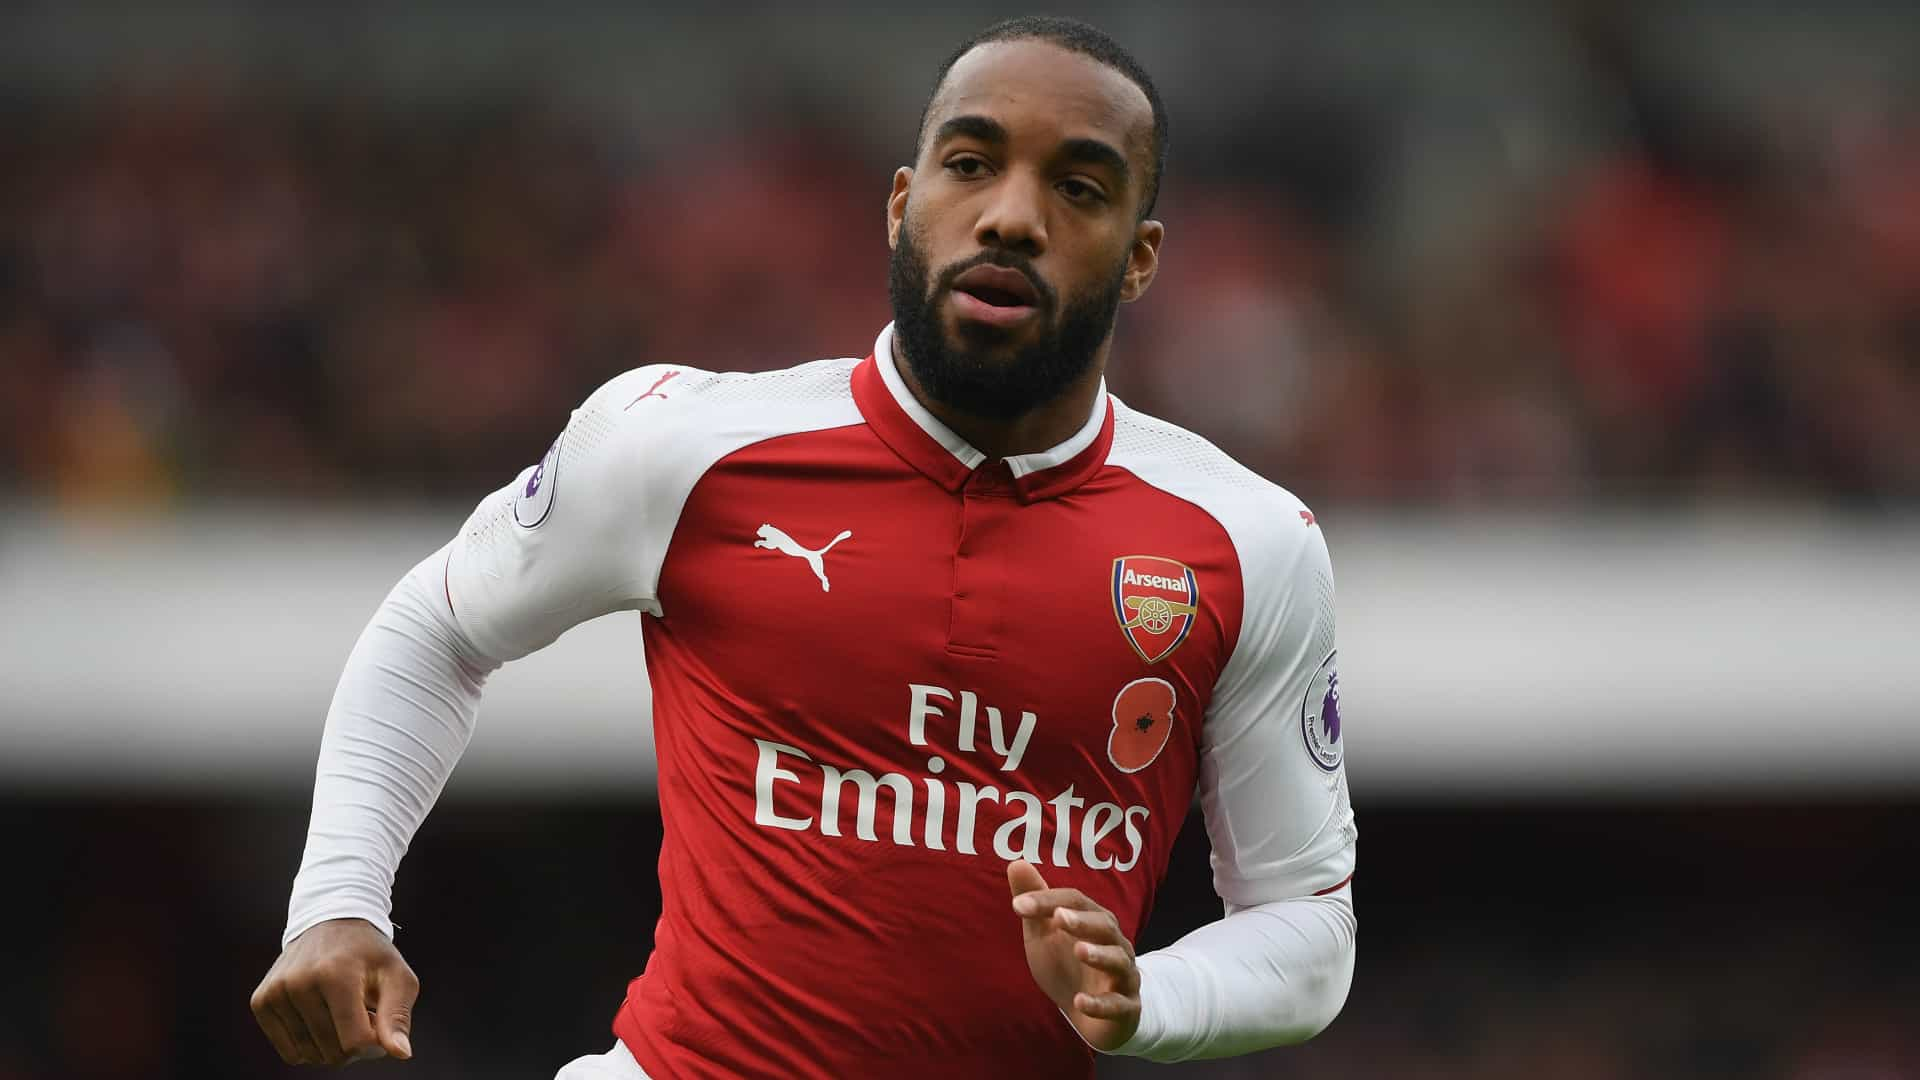 alexandre-lacazette-arsenal